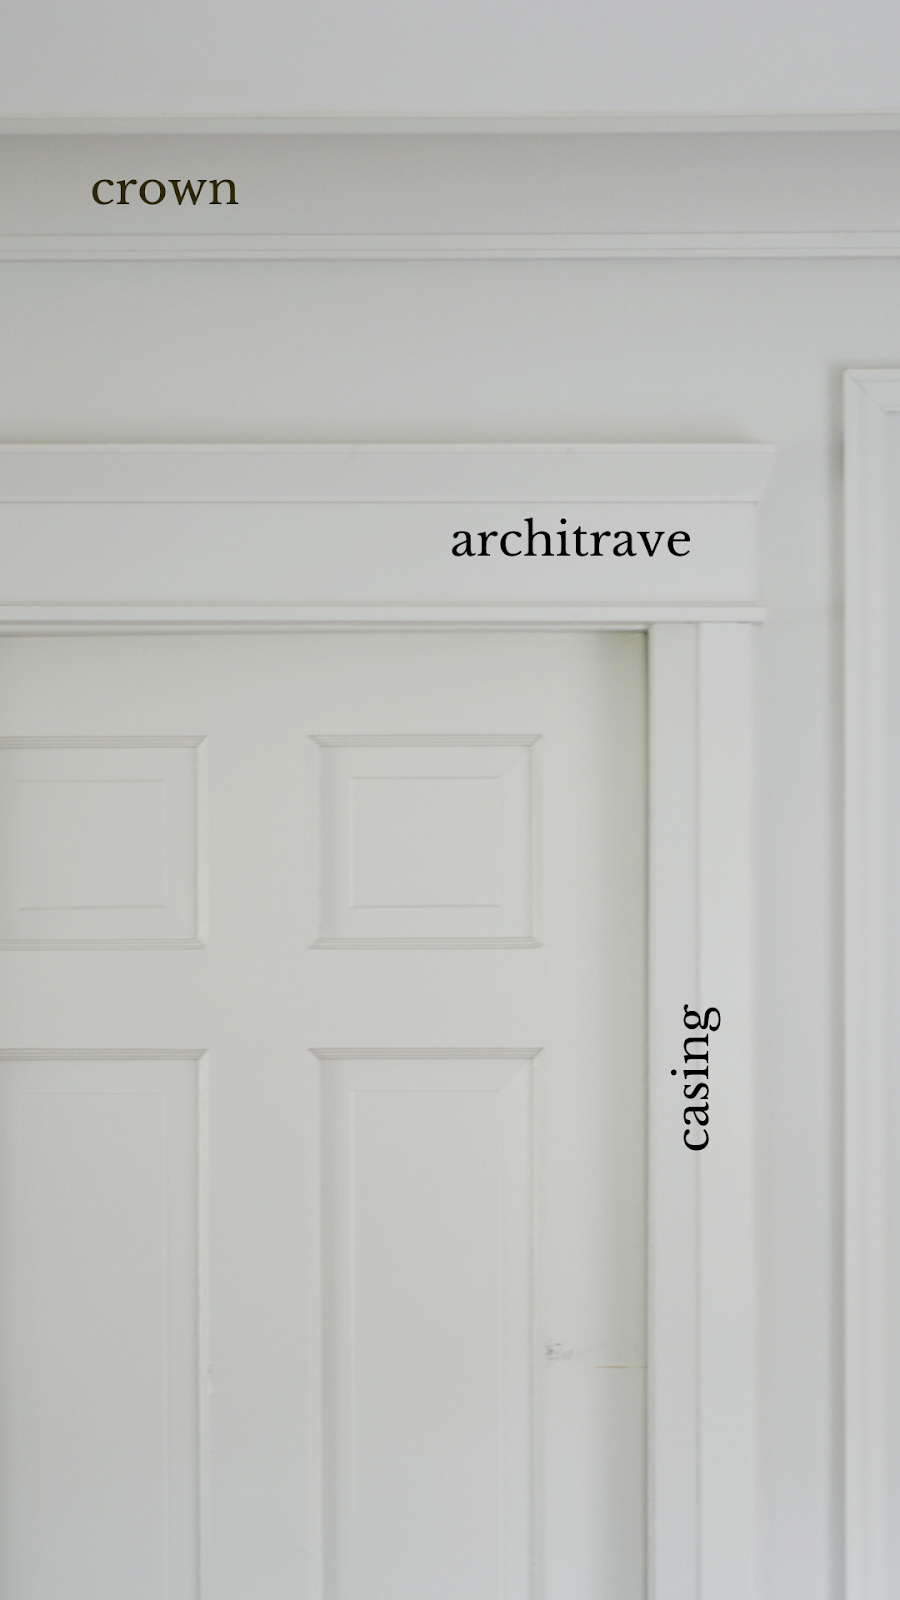 examples of trim and moulding, crown, architrave, casing, traditional moulding